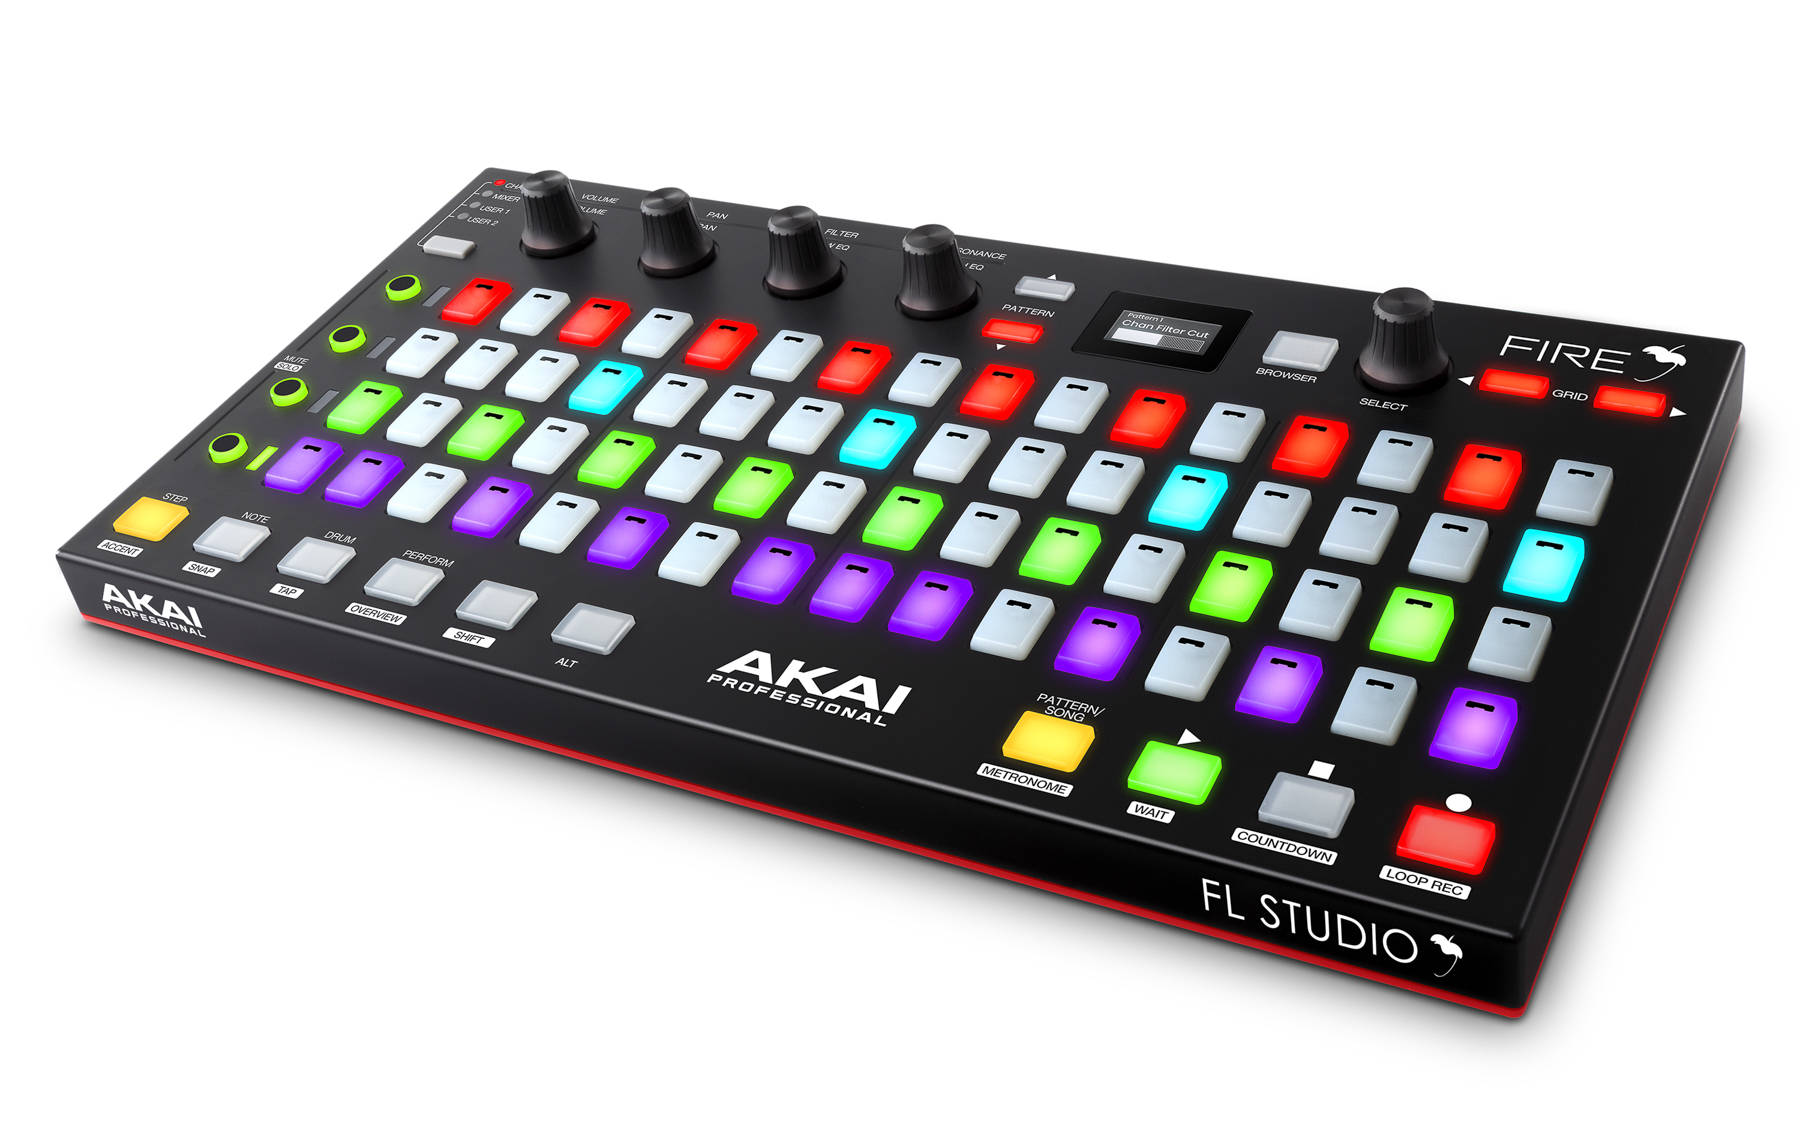 News: Akai Professional mit Plug-and-Play Controller Fire für FL Studio